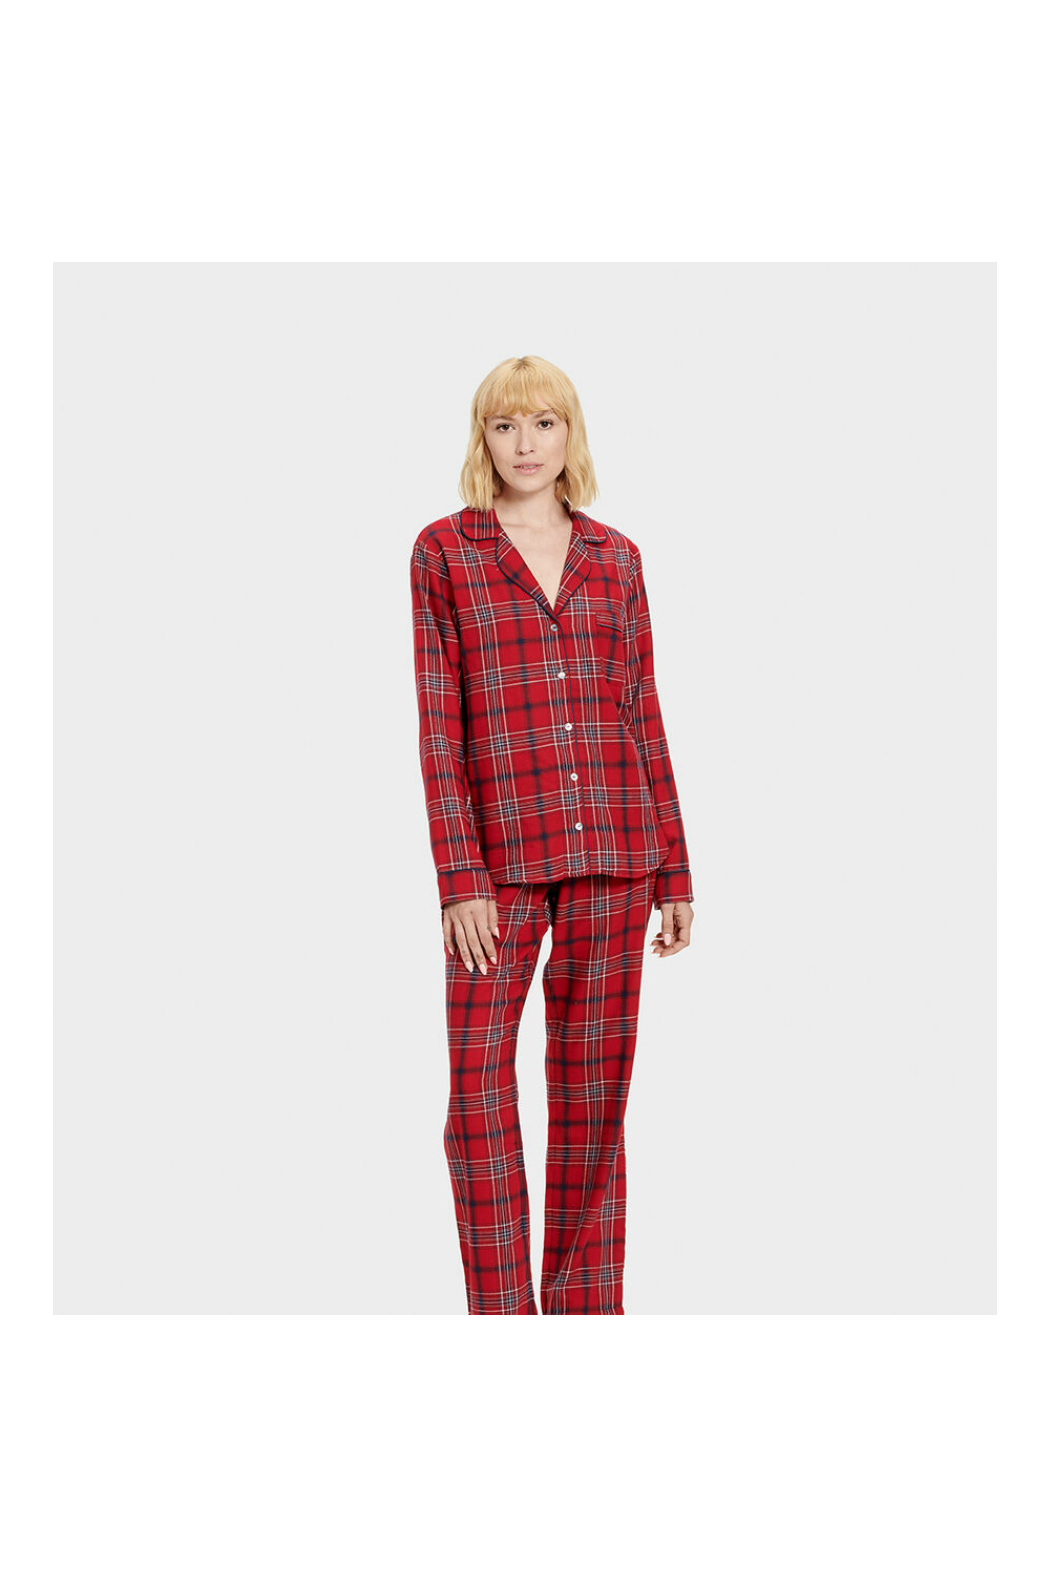 Ugg RAVEN FLANNEL PJ SET - Main Image